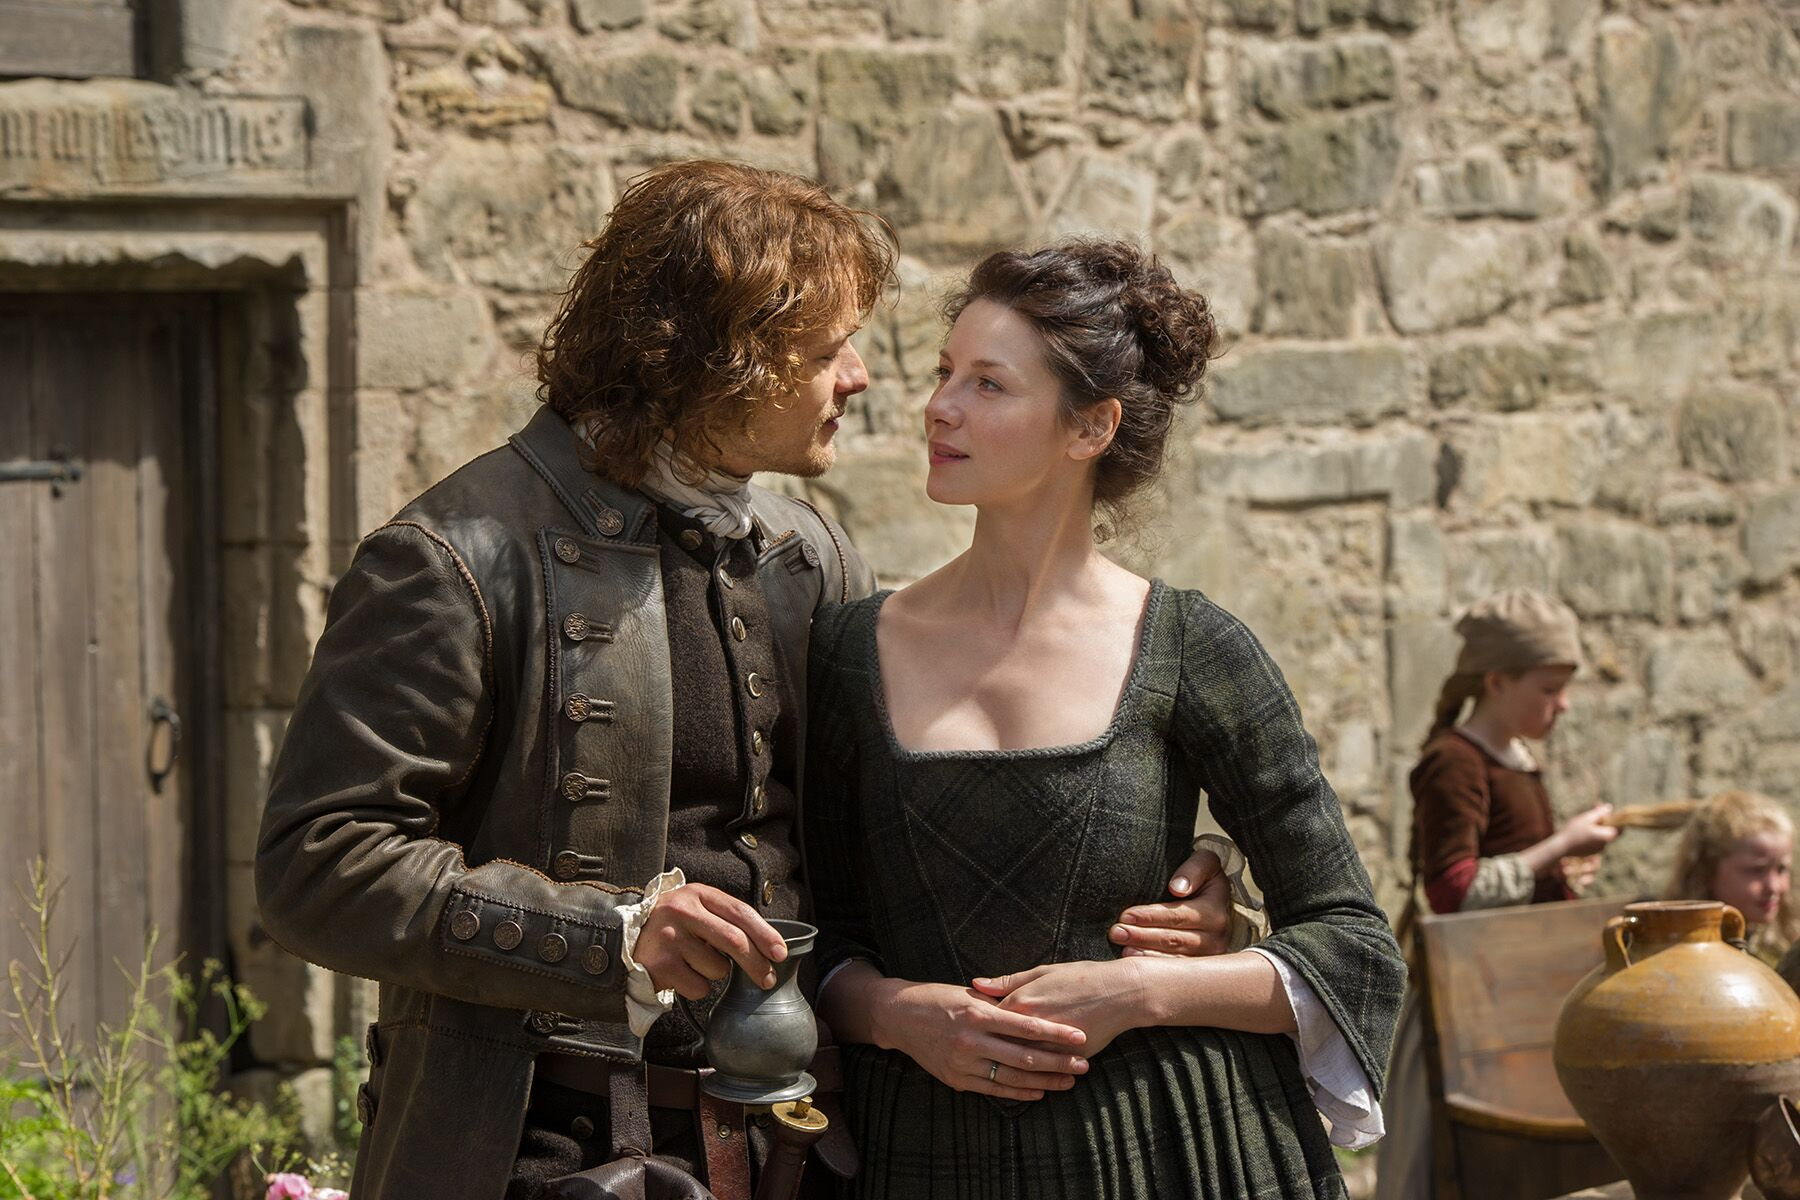 Outlander Seasons 1 and 2 reportedly coming to Netflix U.S. in May 2019